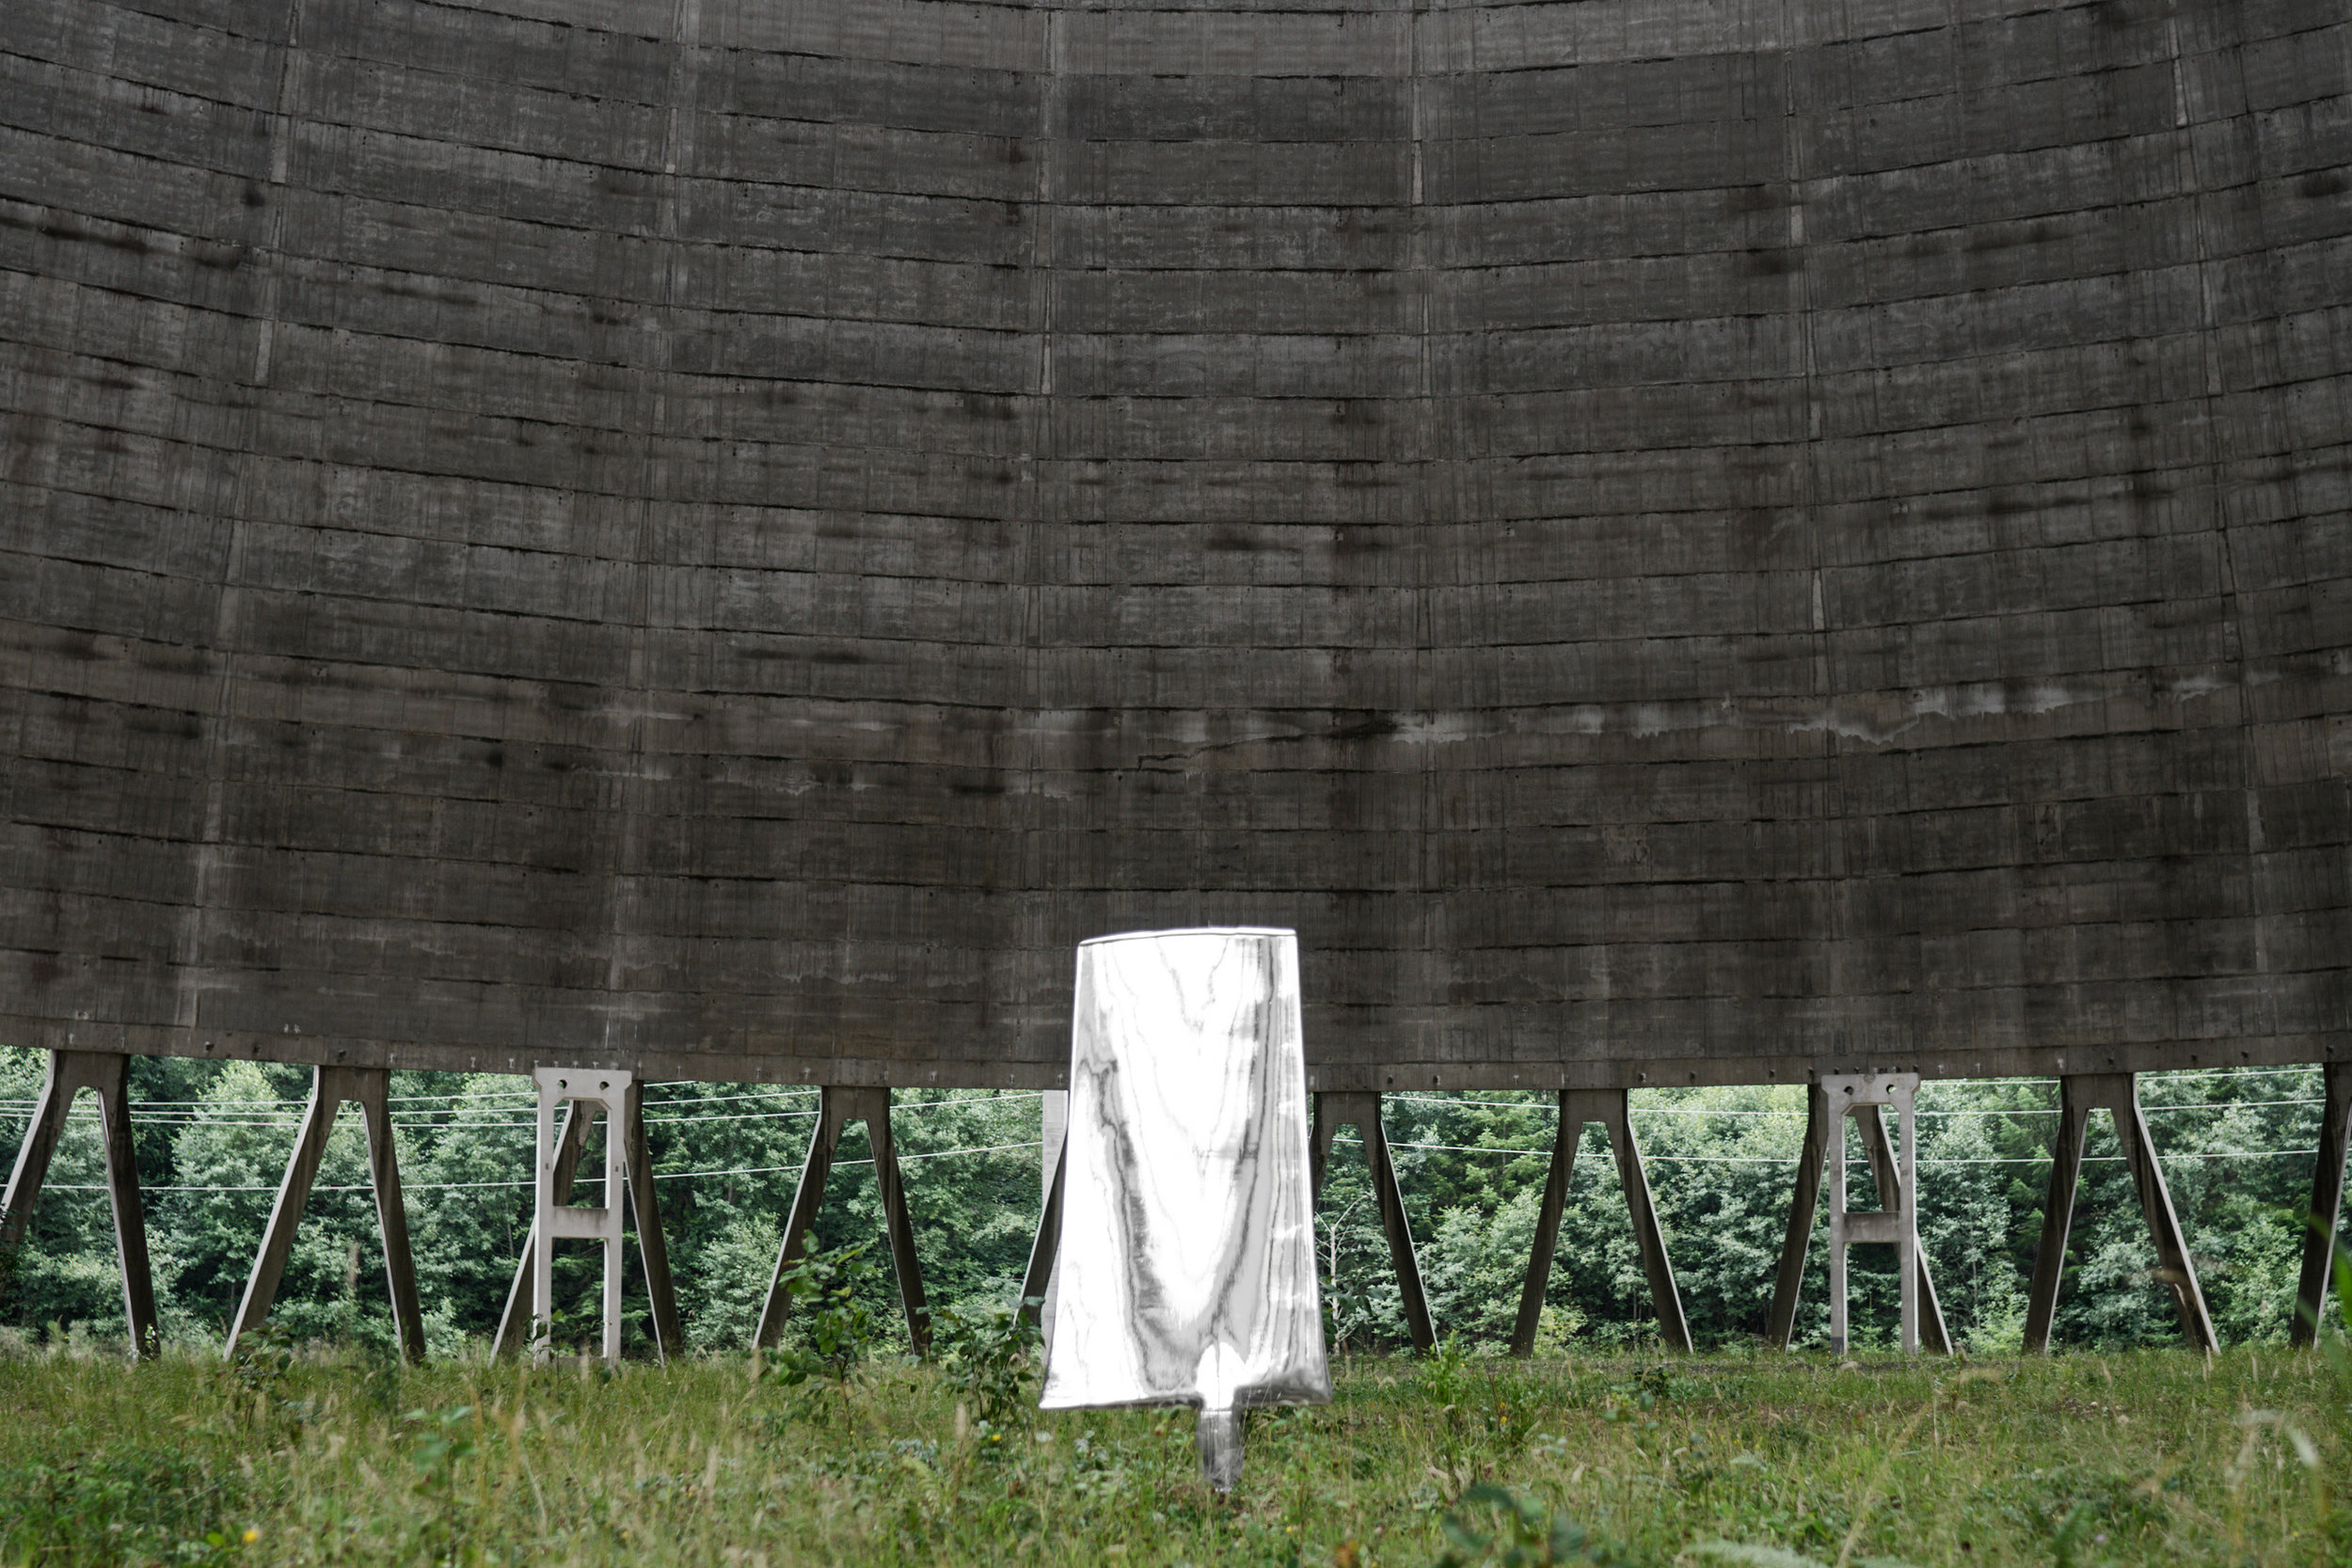 - Decommissioned nuclear tower cooling fins were recontextualized into an art installation to provoke reflection about responsible energy creation and consumption.